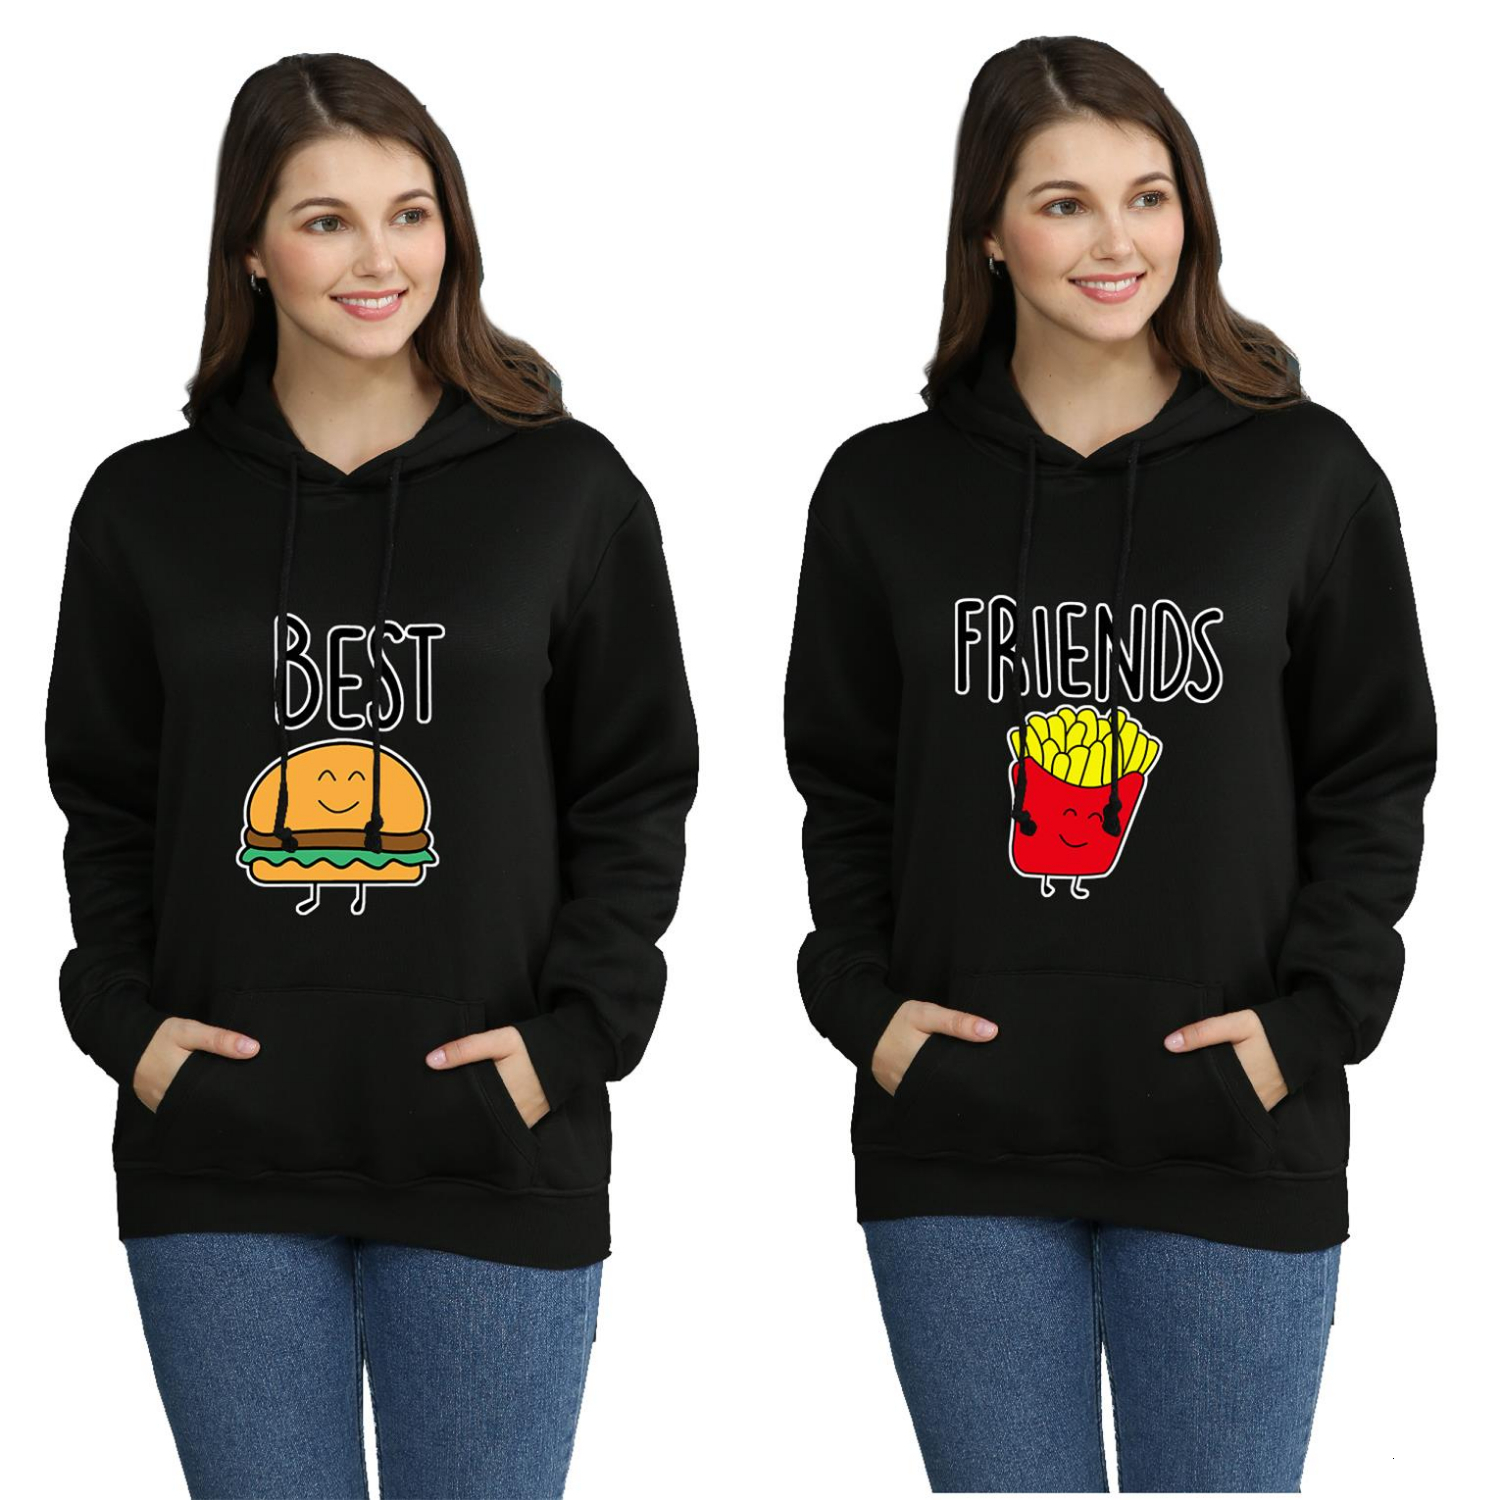 Friends French Fry Best  Hoodies Sweatshirt Jacket Casual Oversized Hoodie Plus Size 4XL Merchandise